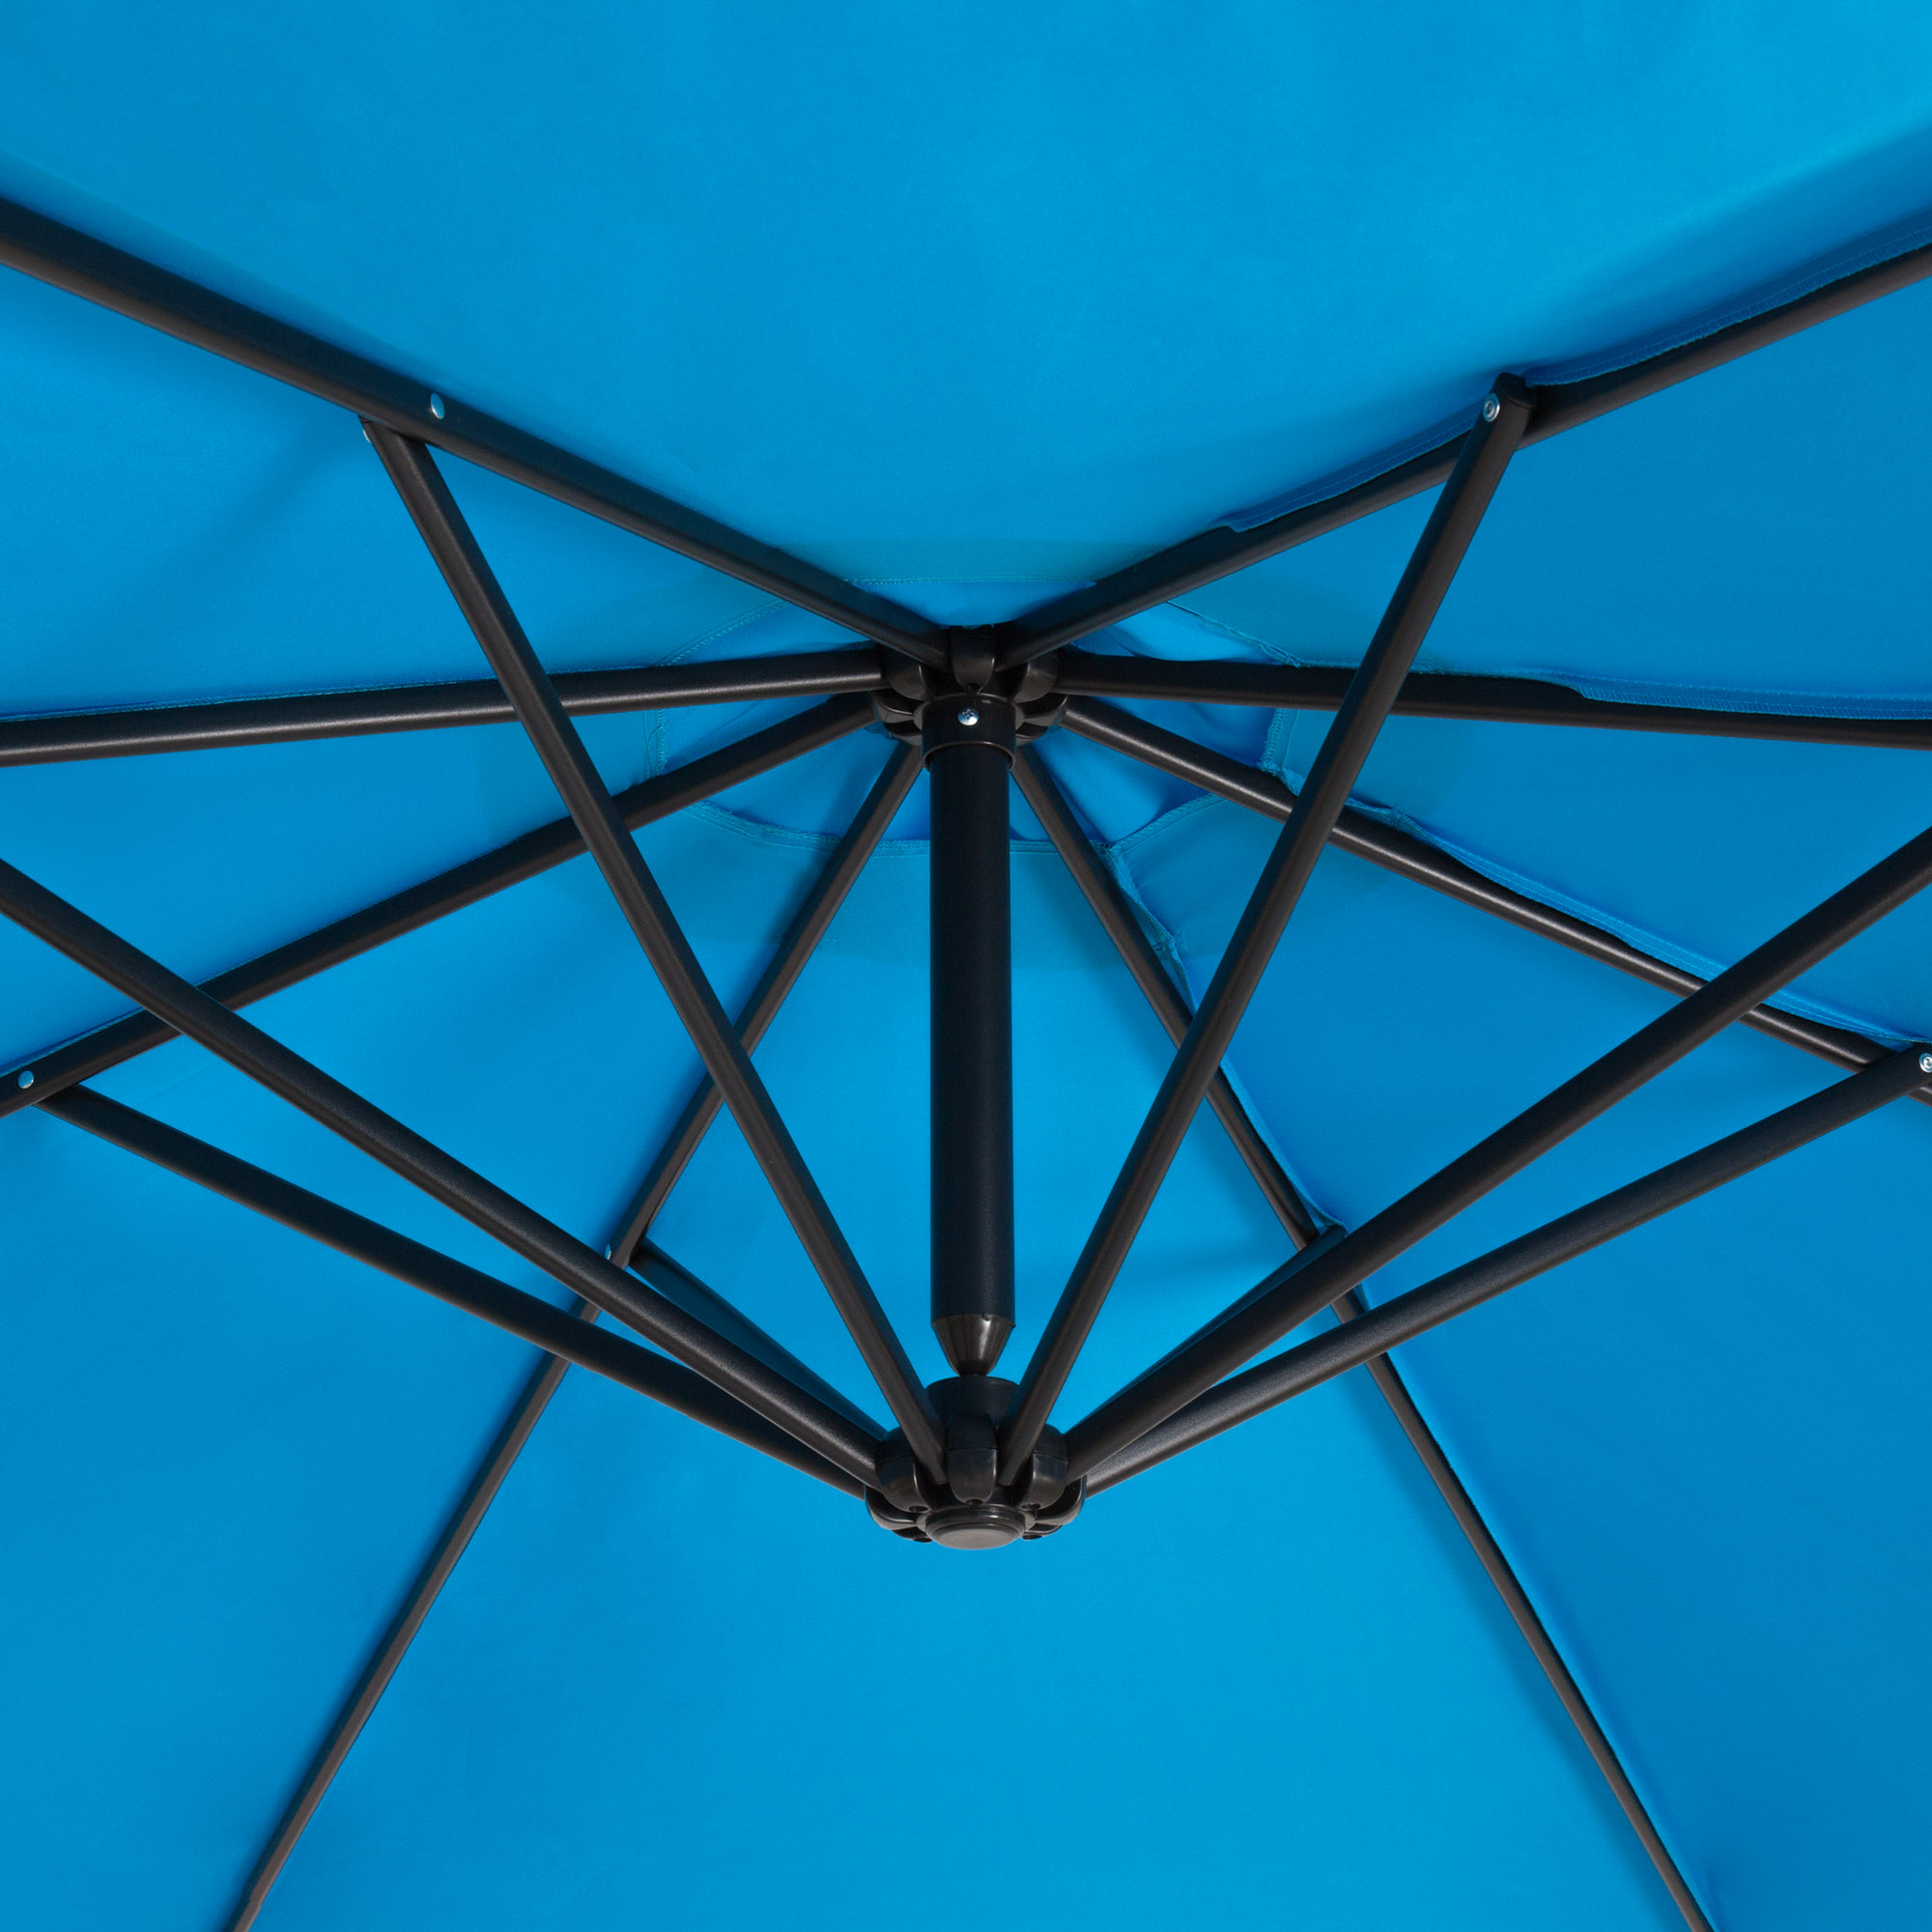 BCP-10ft-Offset-Hanging-Market-Patio-Umbrella-w-Tilt-Adjustment-Hand-Crank thumbnail 16